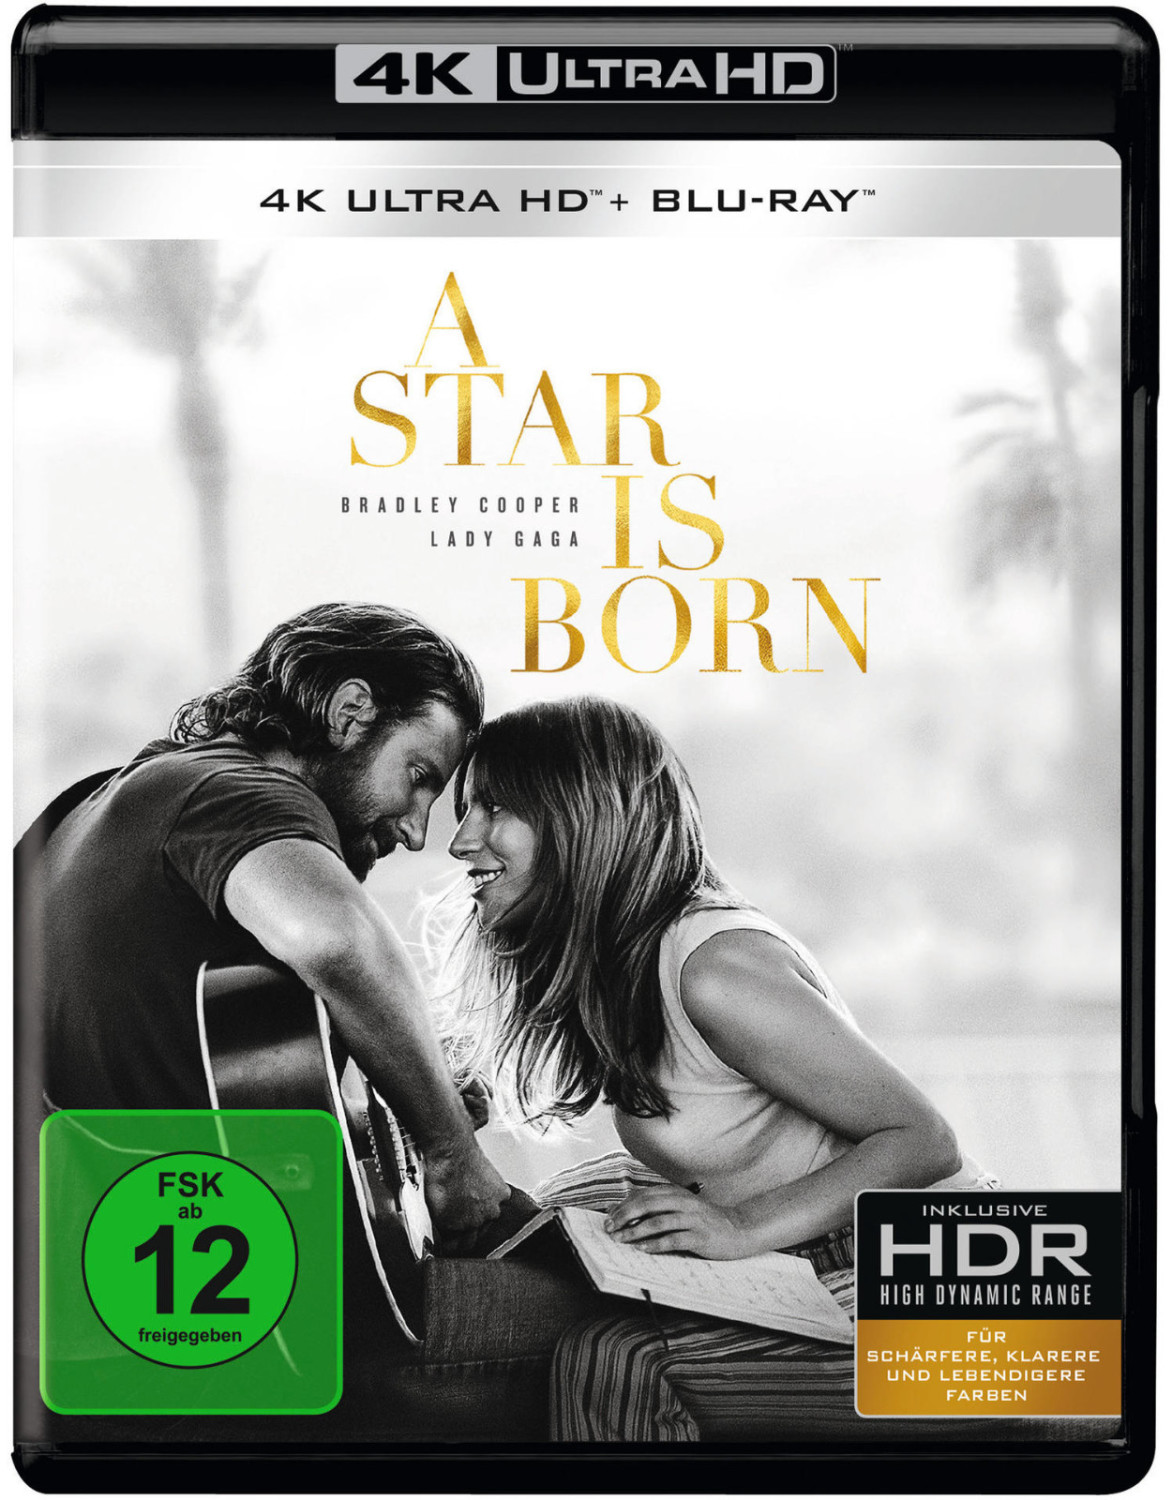 *A Star is born (2018, Lady Gaga, Bradley Cooper) (4K Ultra HD) [Blu-ray]*